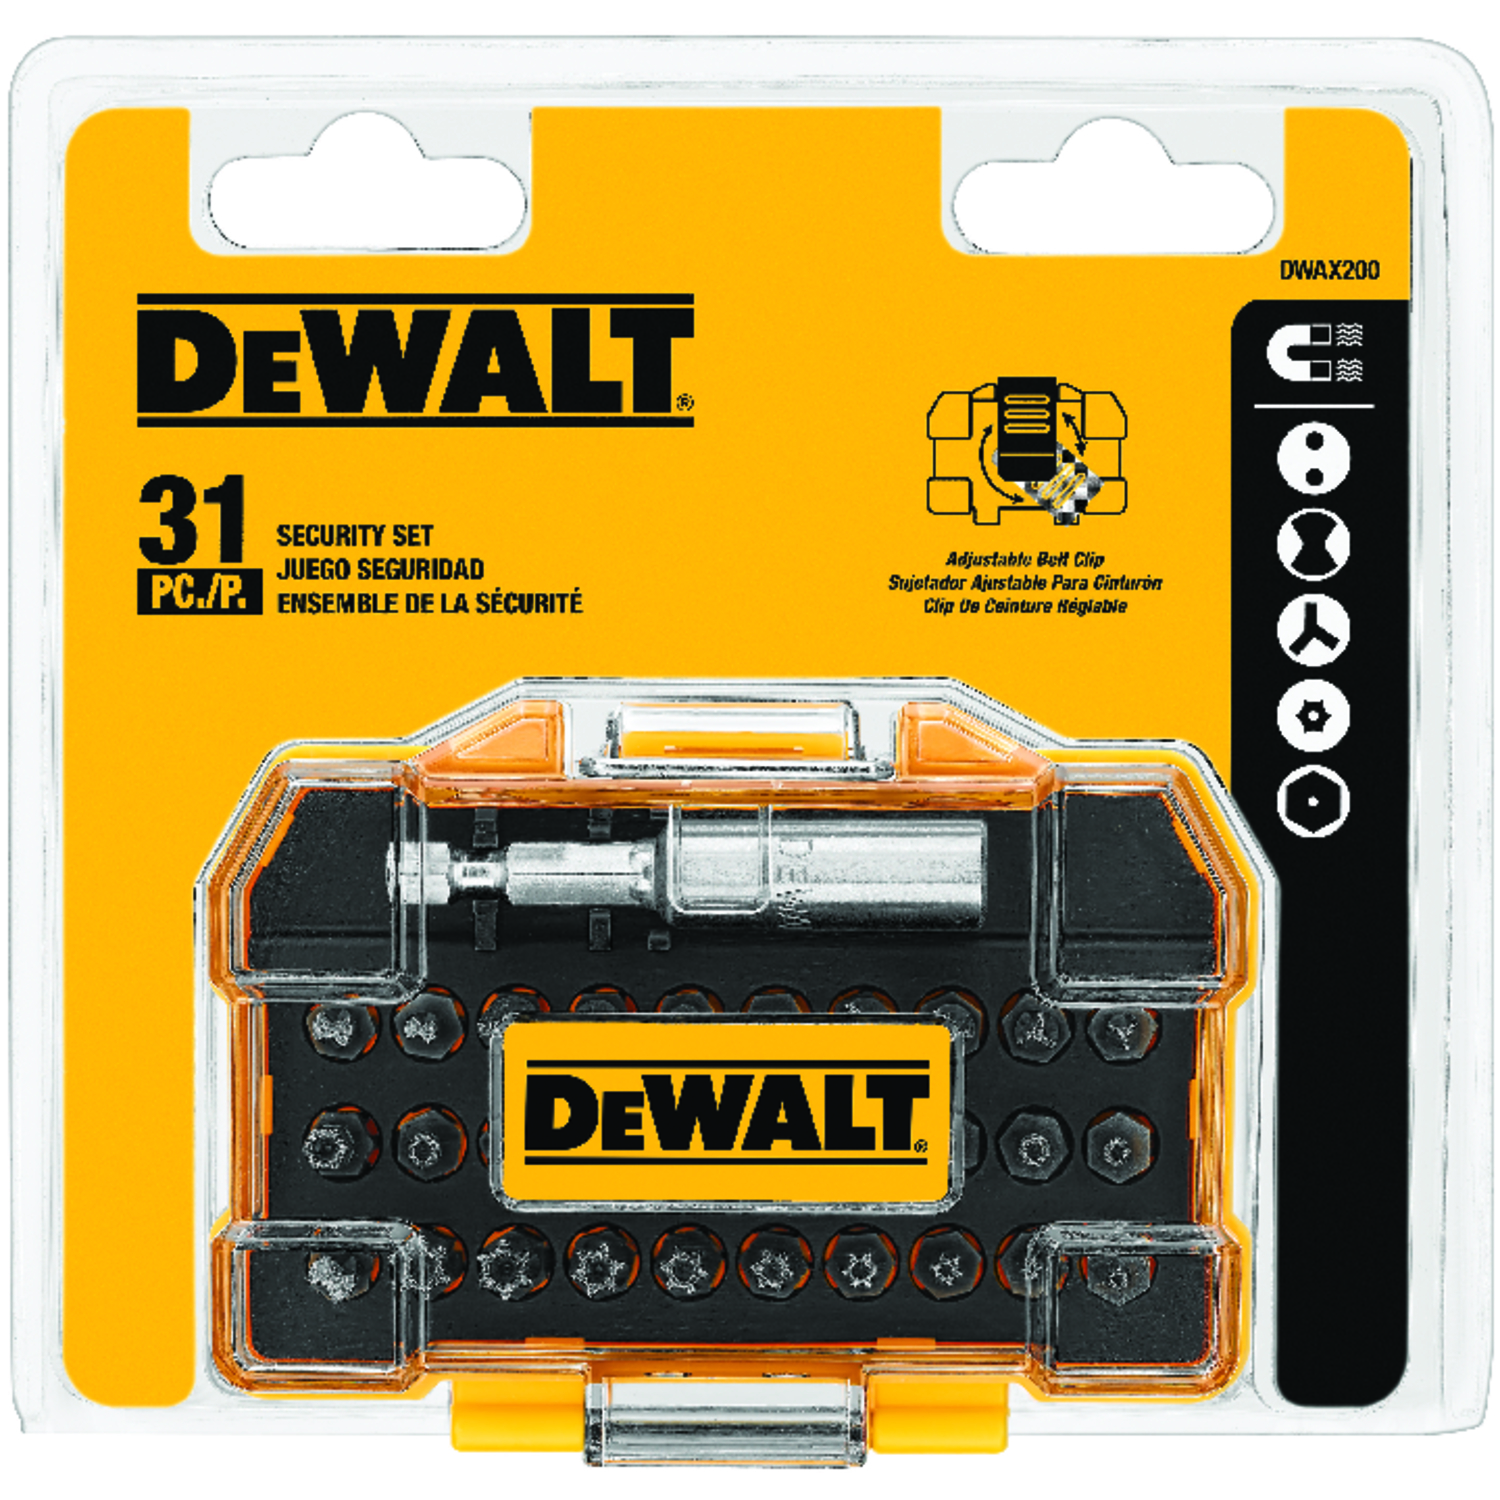 DeWalt  Security  Multi Size in.  1/4 in. Screwdriver Bit  31 pc.